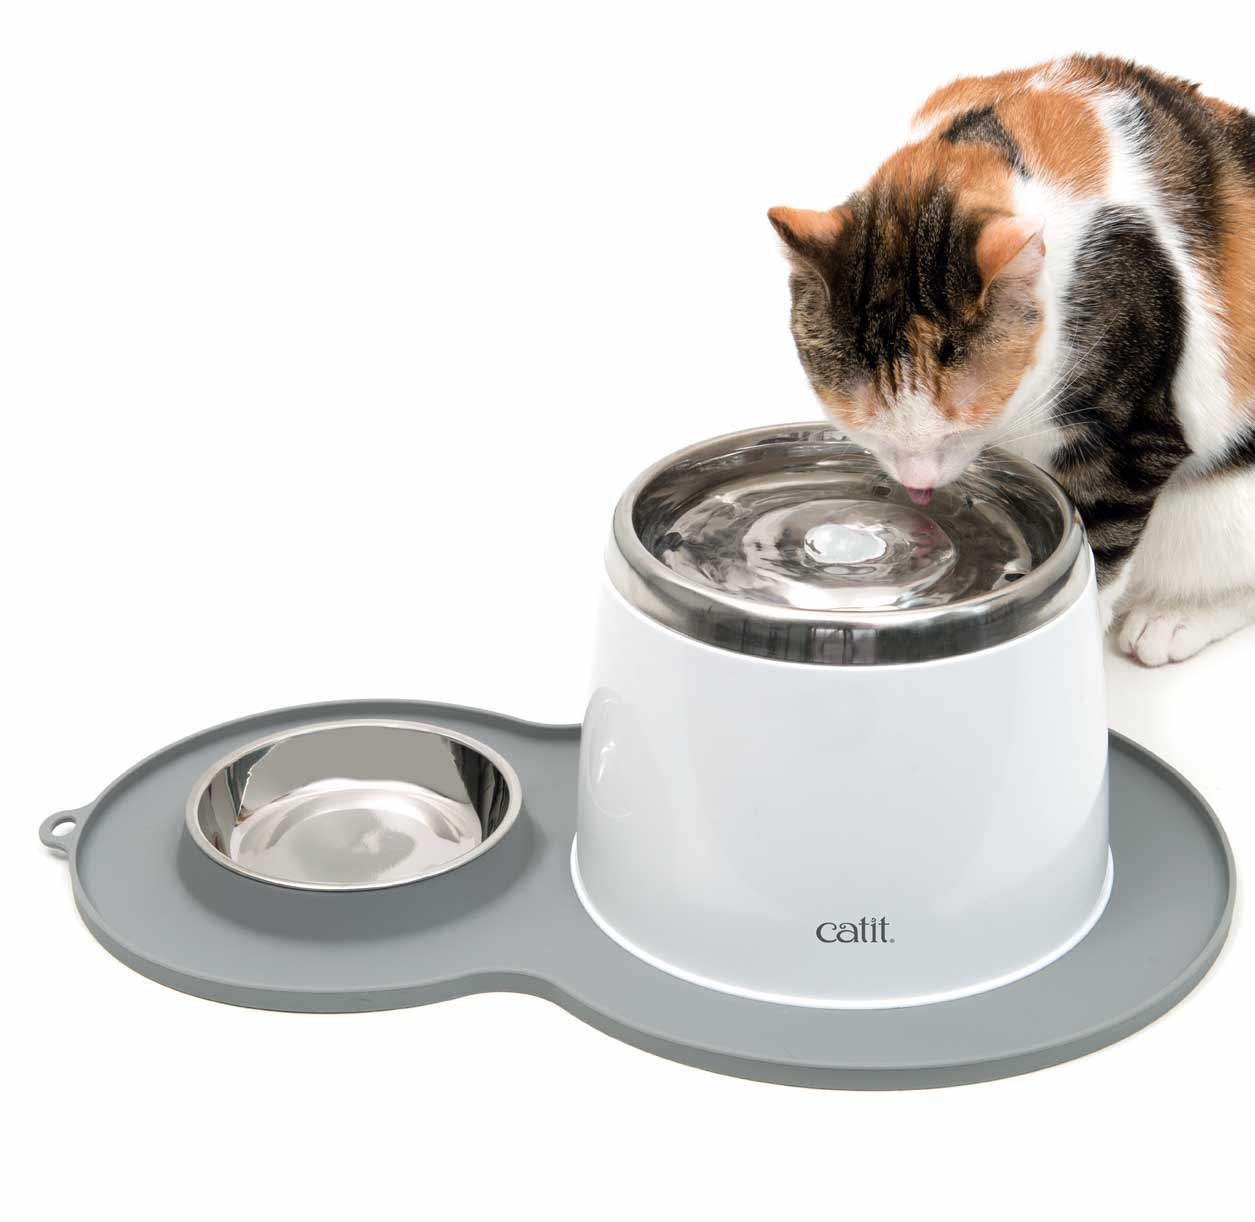 Pixi using her stainless steel drinking fountain on the peanut placemat